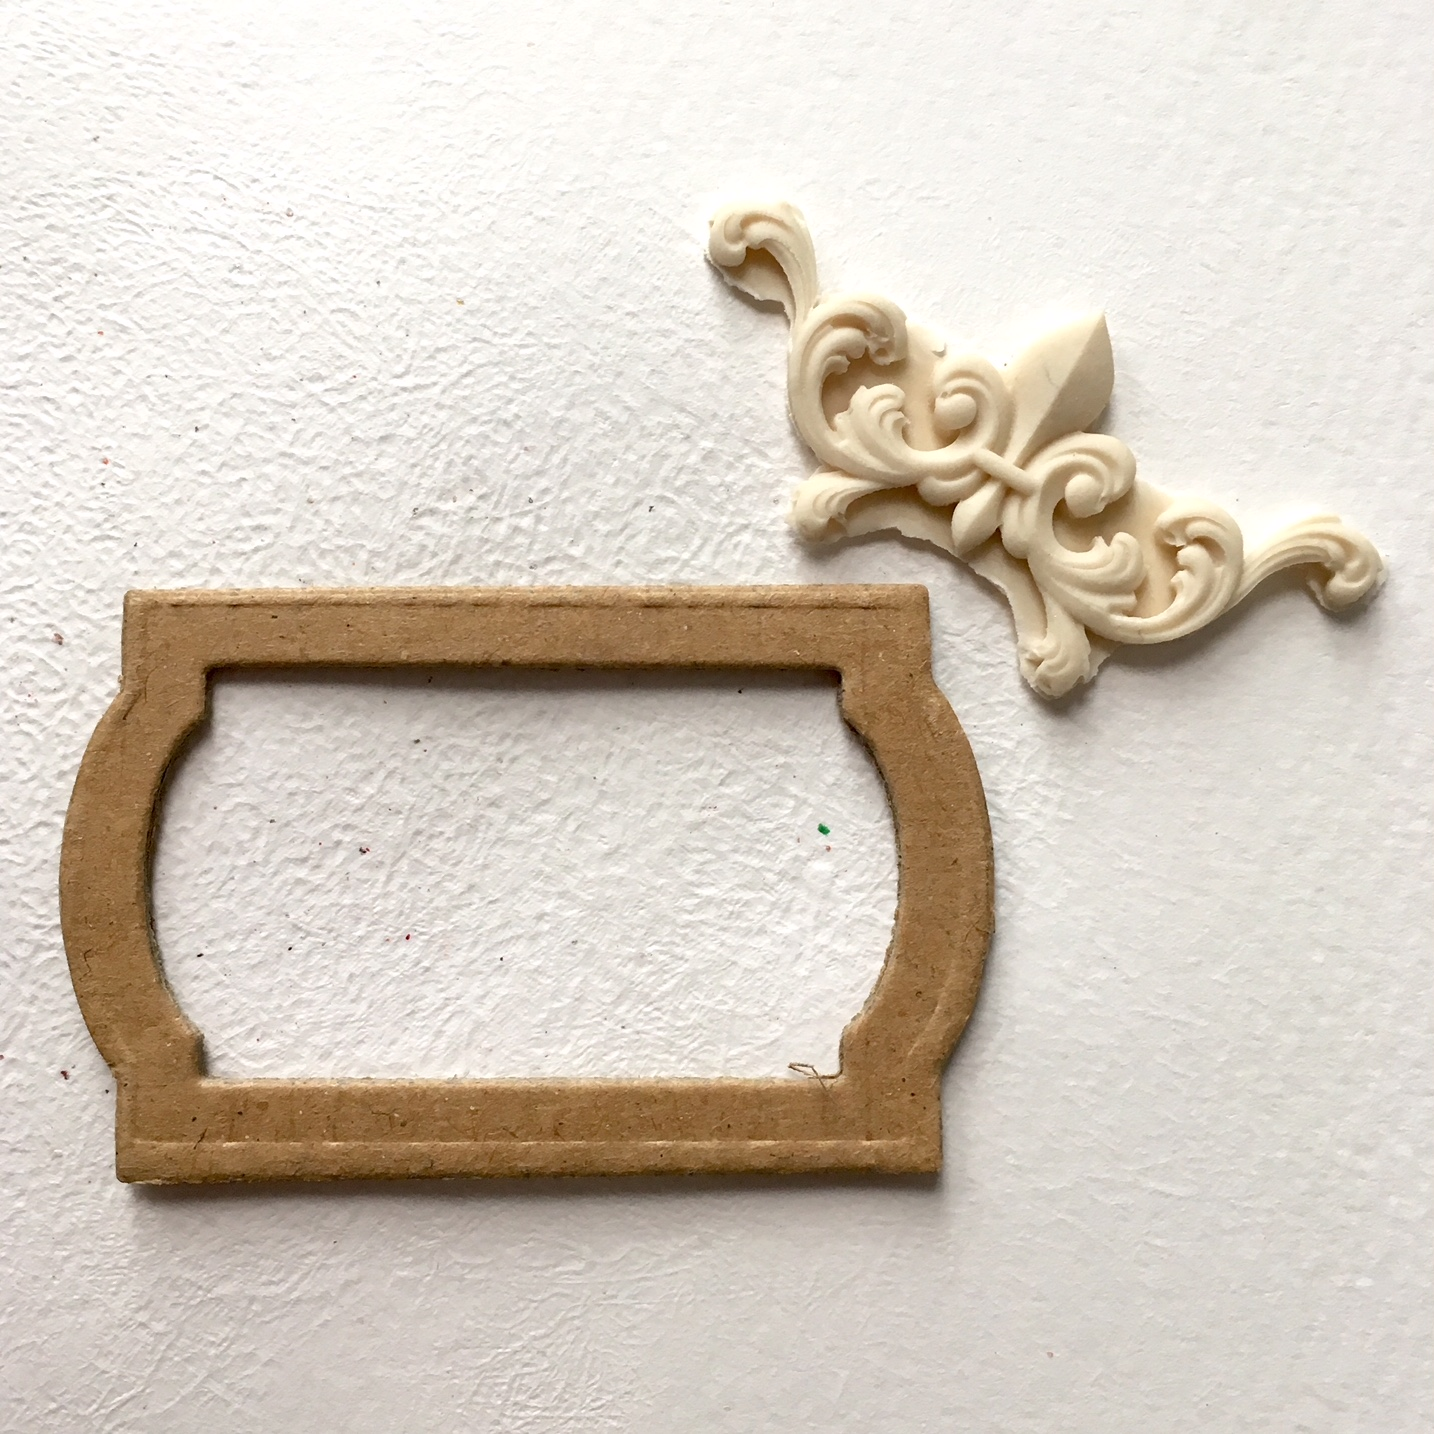 recycled cardboard frame and molded frame element